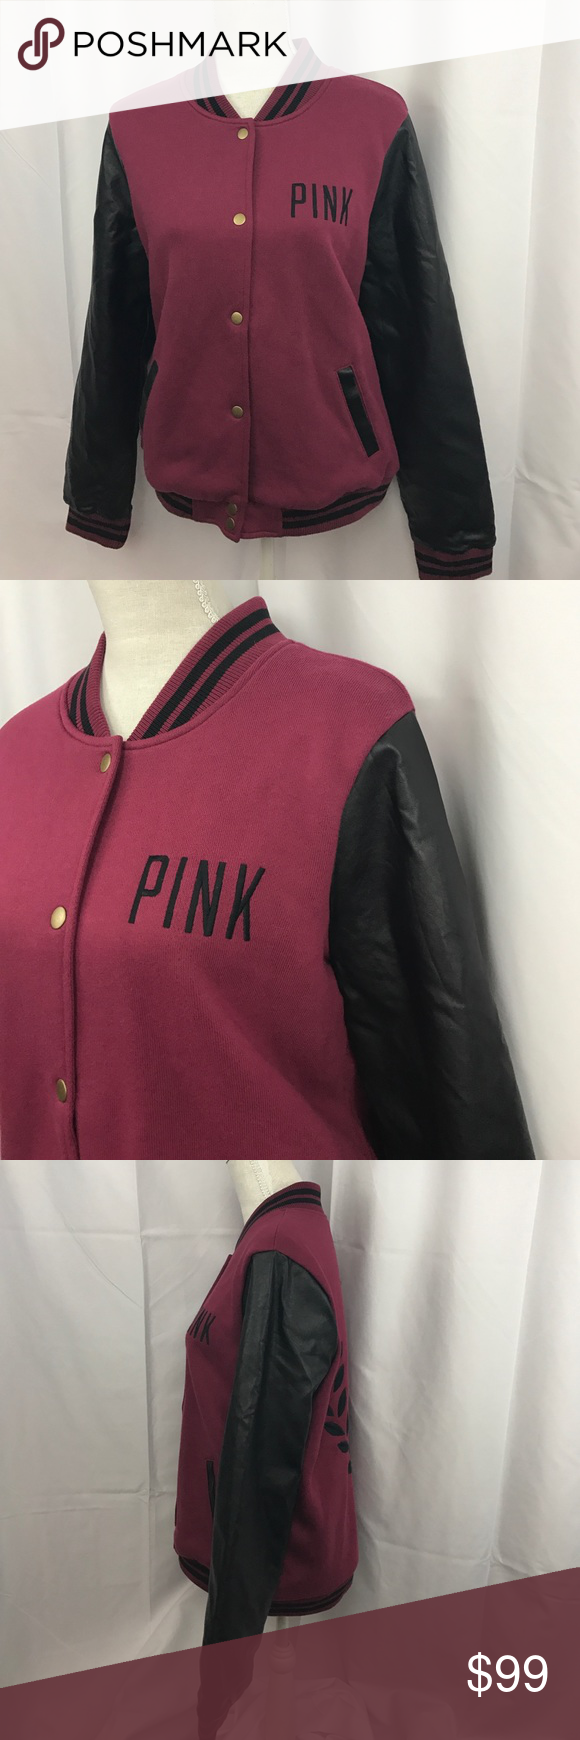 NWT PINK Victoria's Secret szL rare bomber jacket NWT PINK Victoria's Secret szL rare bomber jacket in burgandy w/faux leather sleeves...embroidered back...lined w/a soft satiny material... PINK Victoria's Secret Jackets & Coats